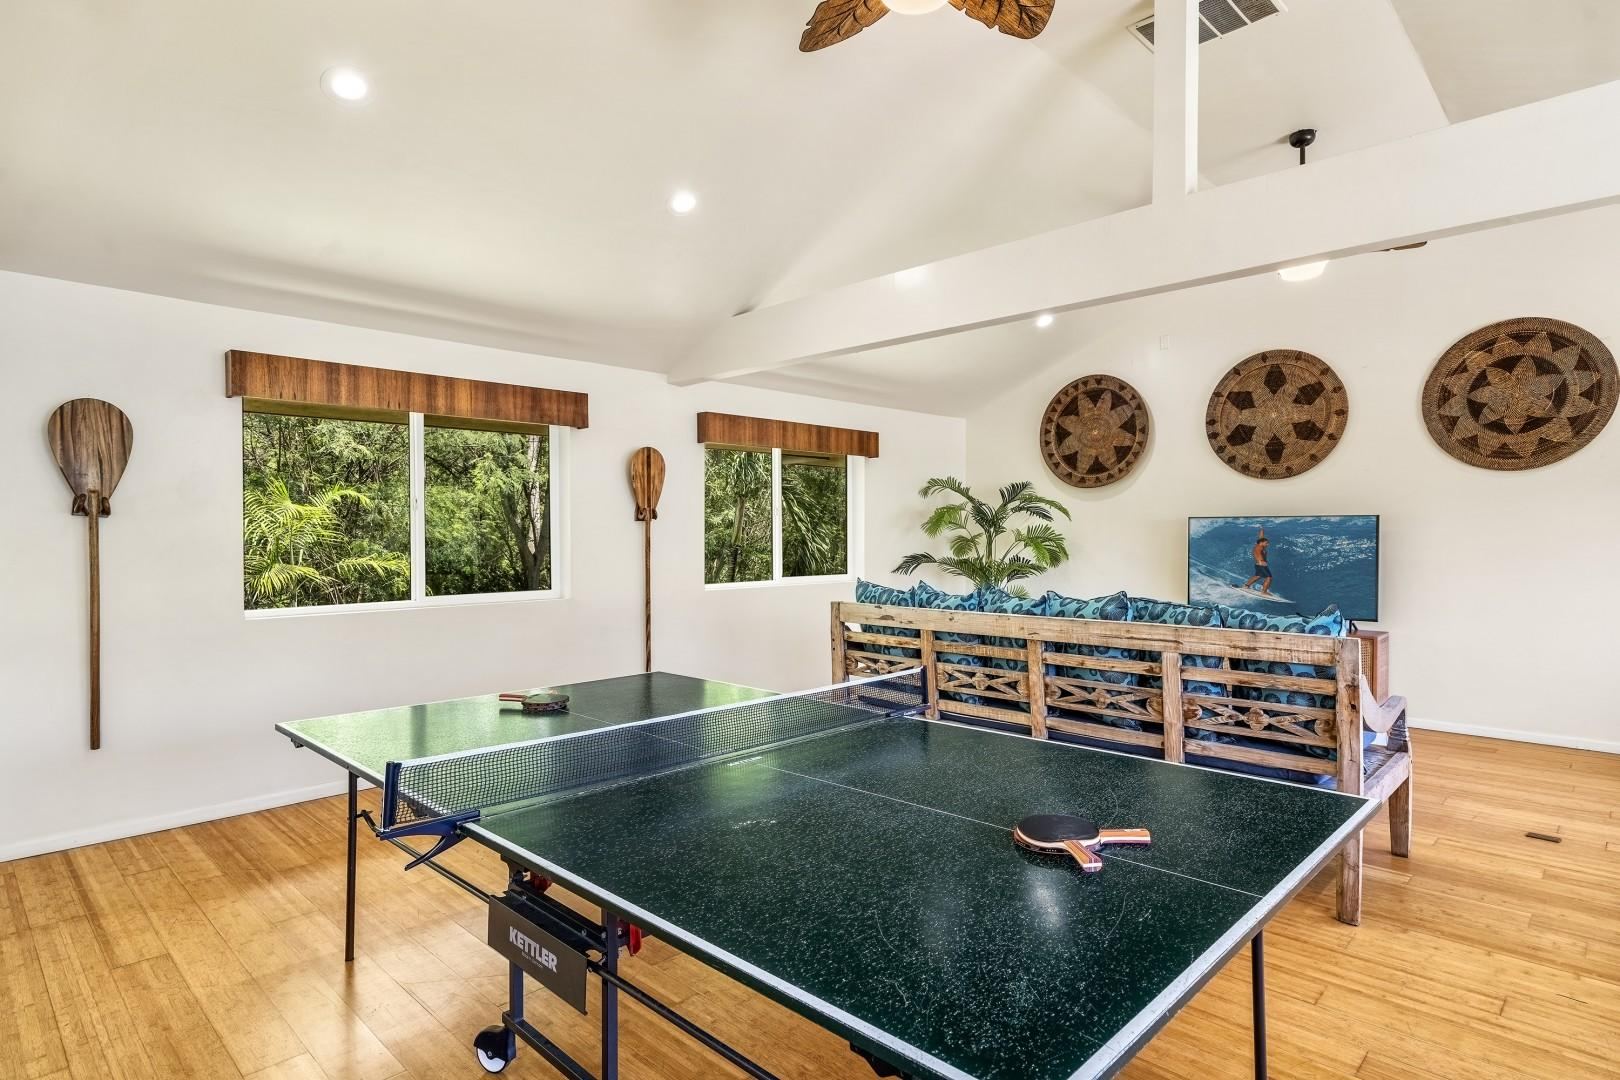 Play a game of ping pong!